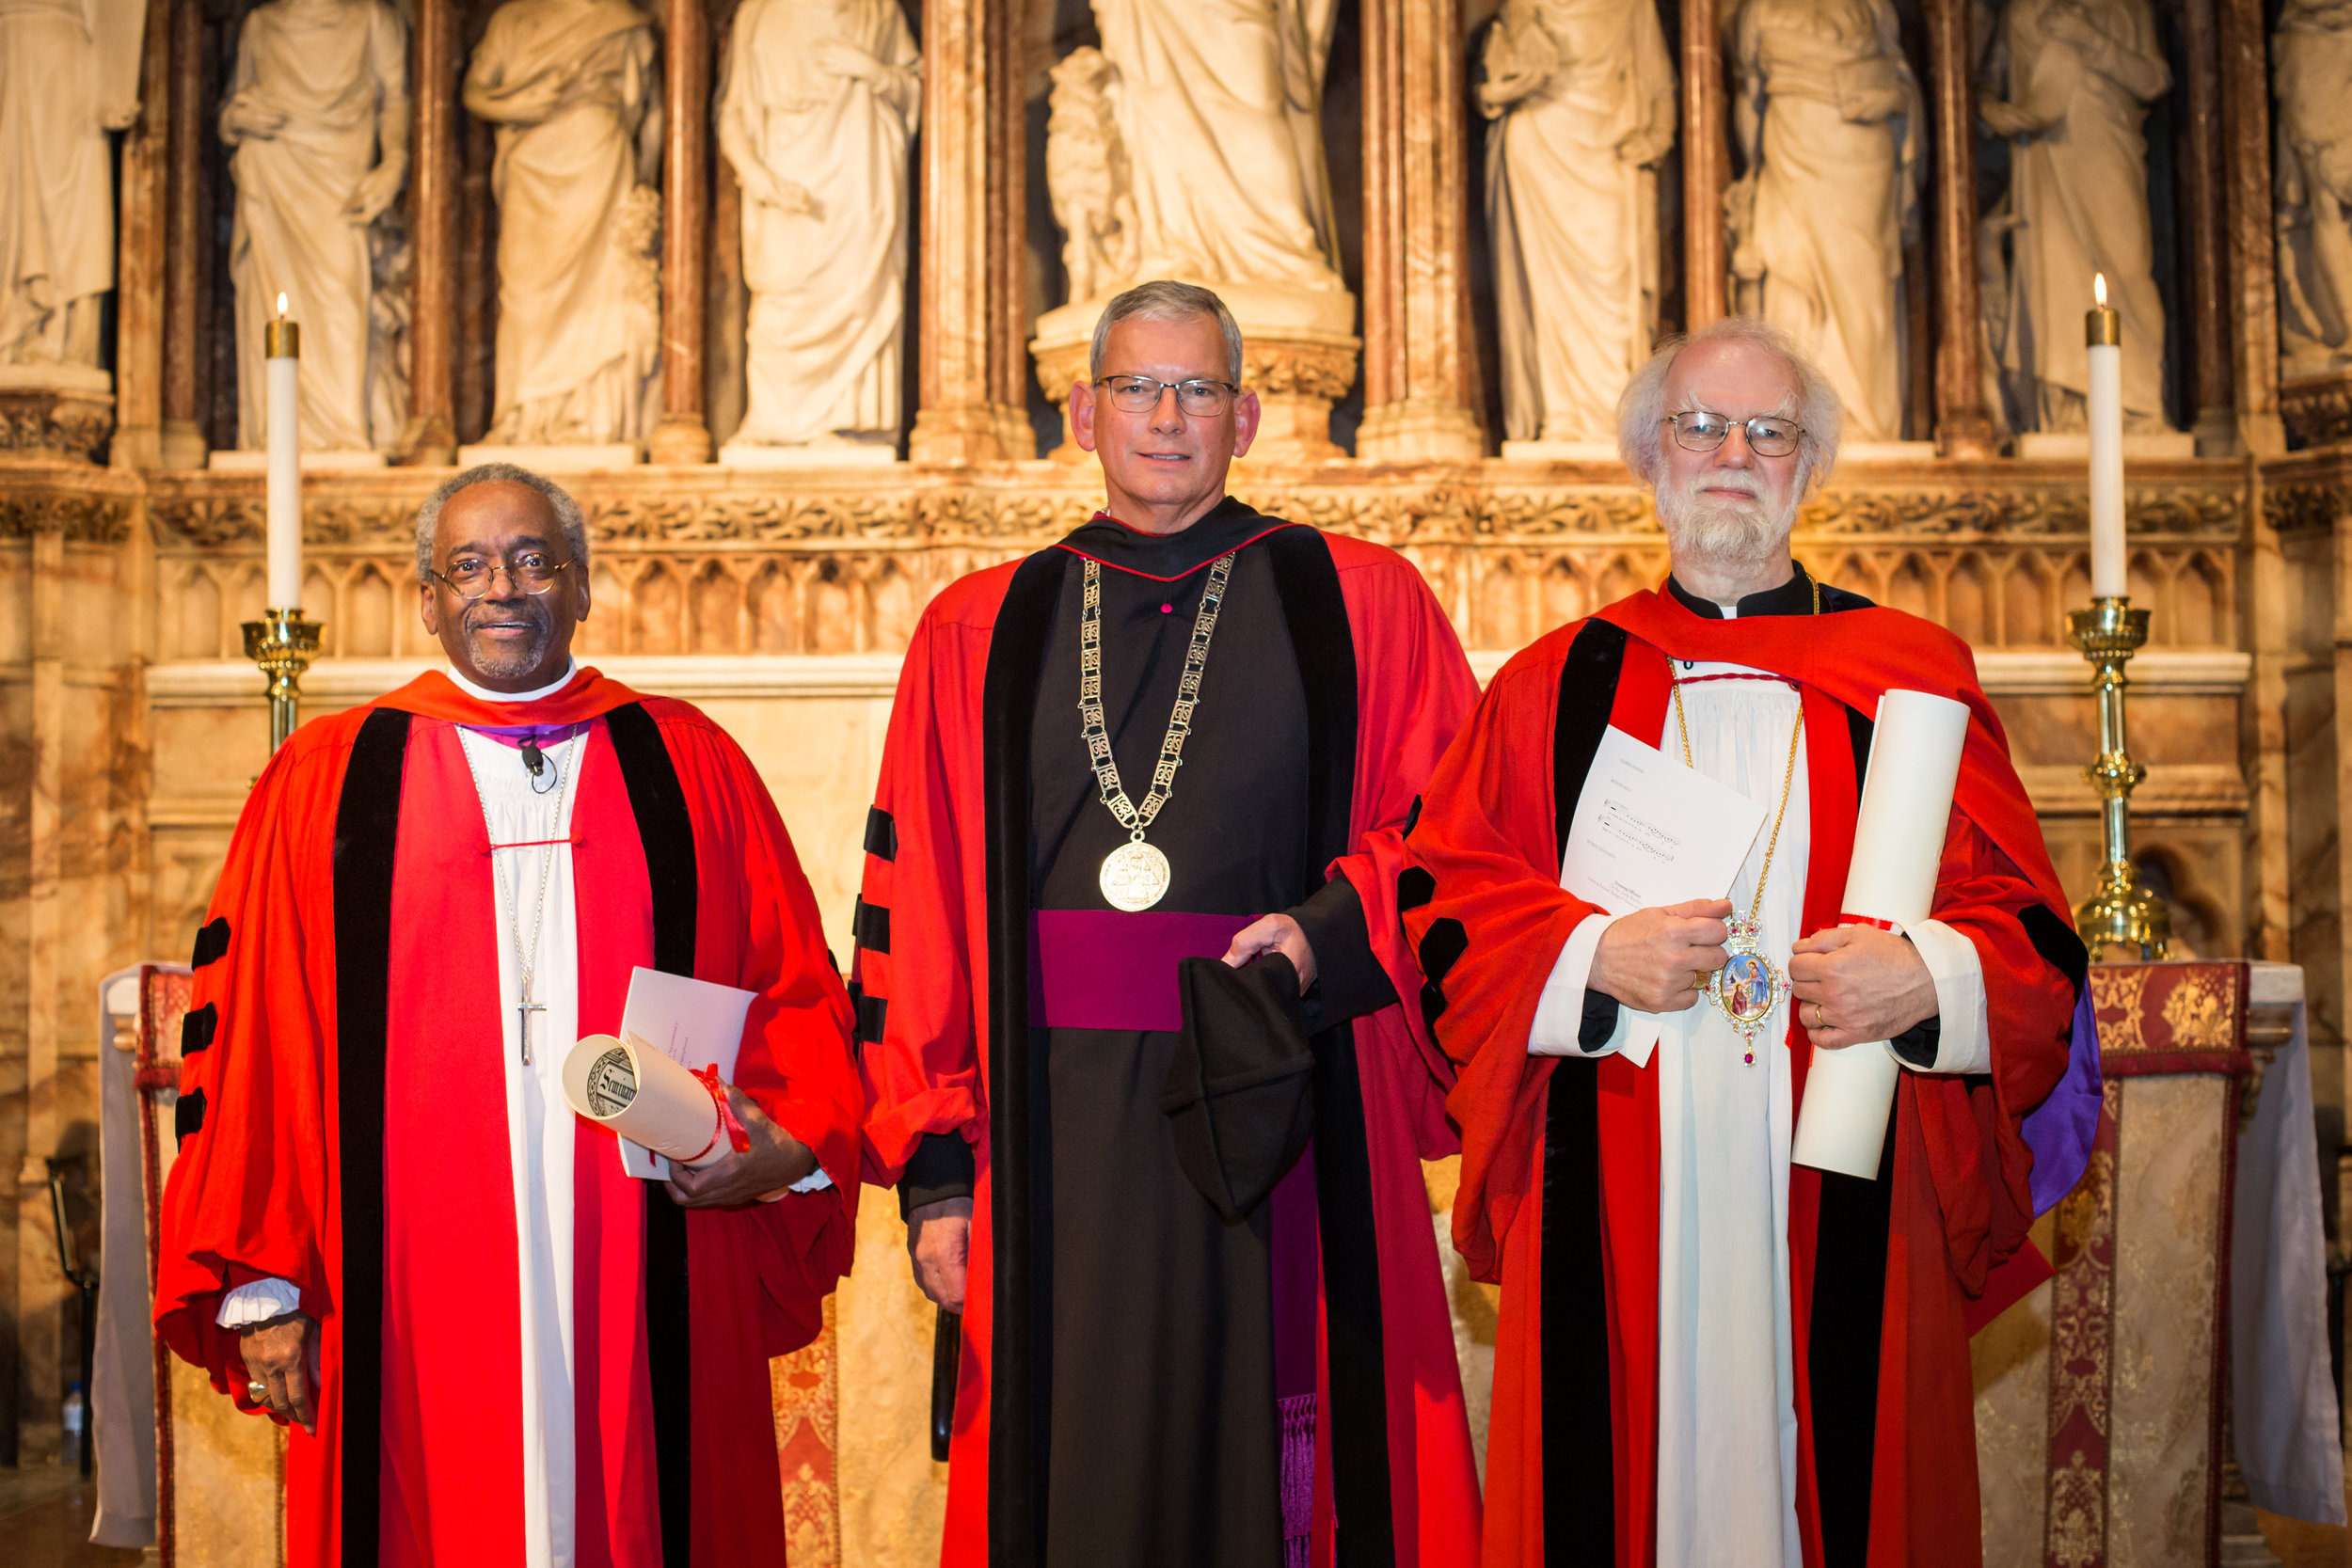 Dean Dunkle with Honorary Doctorates.jpg